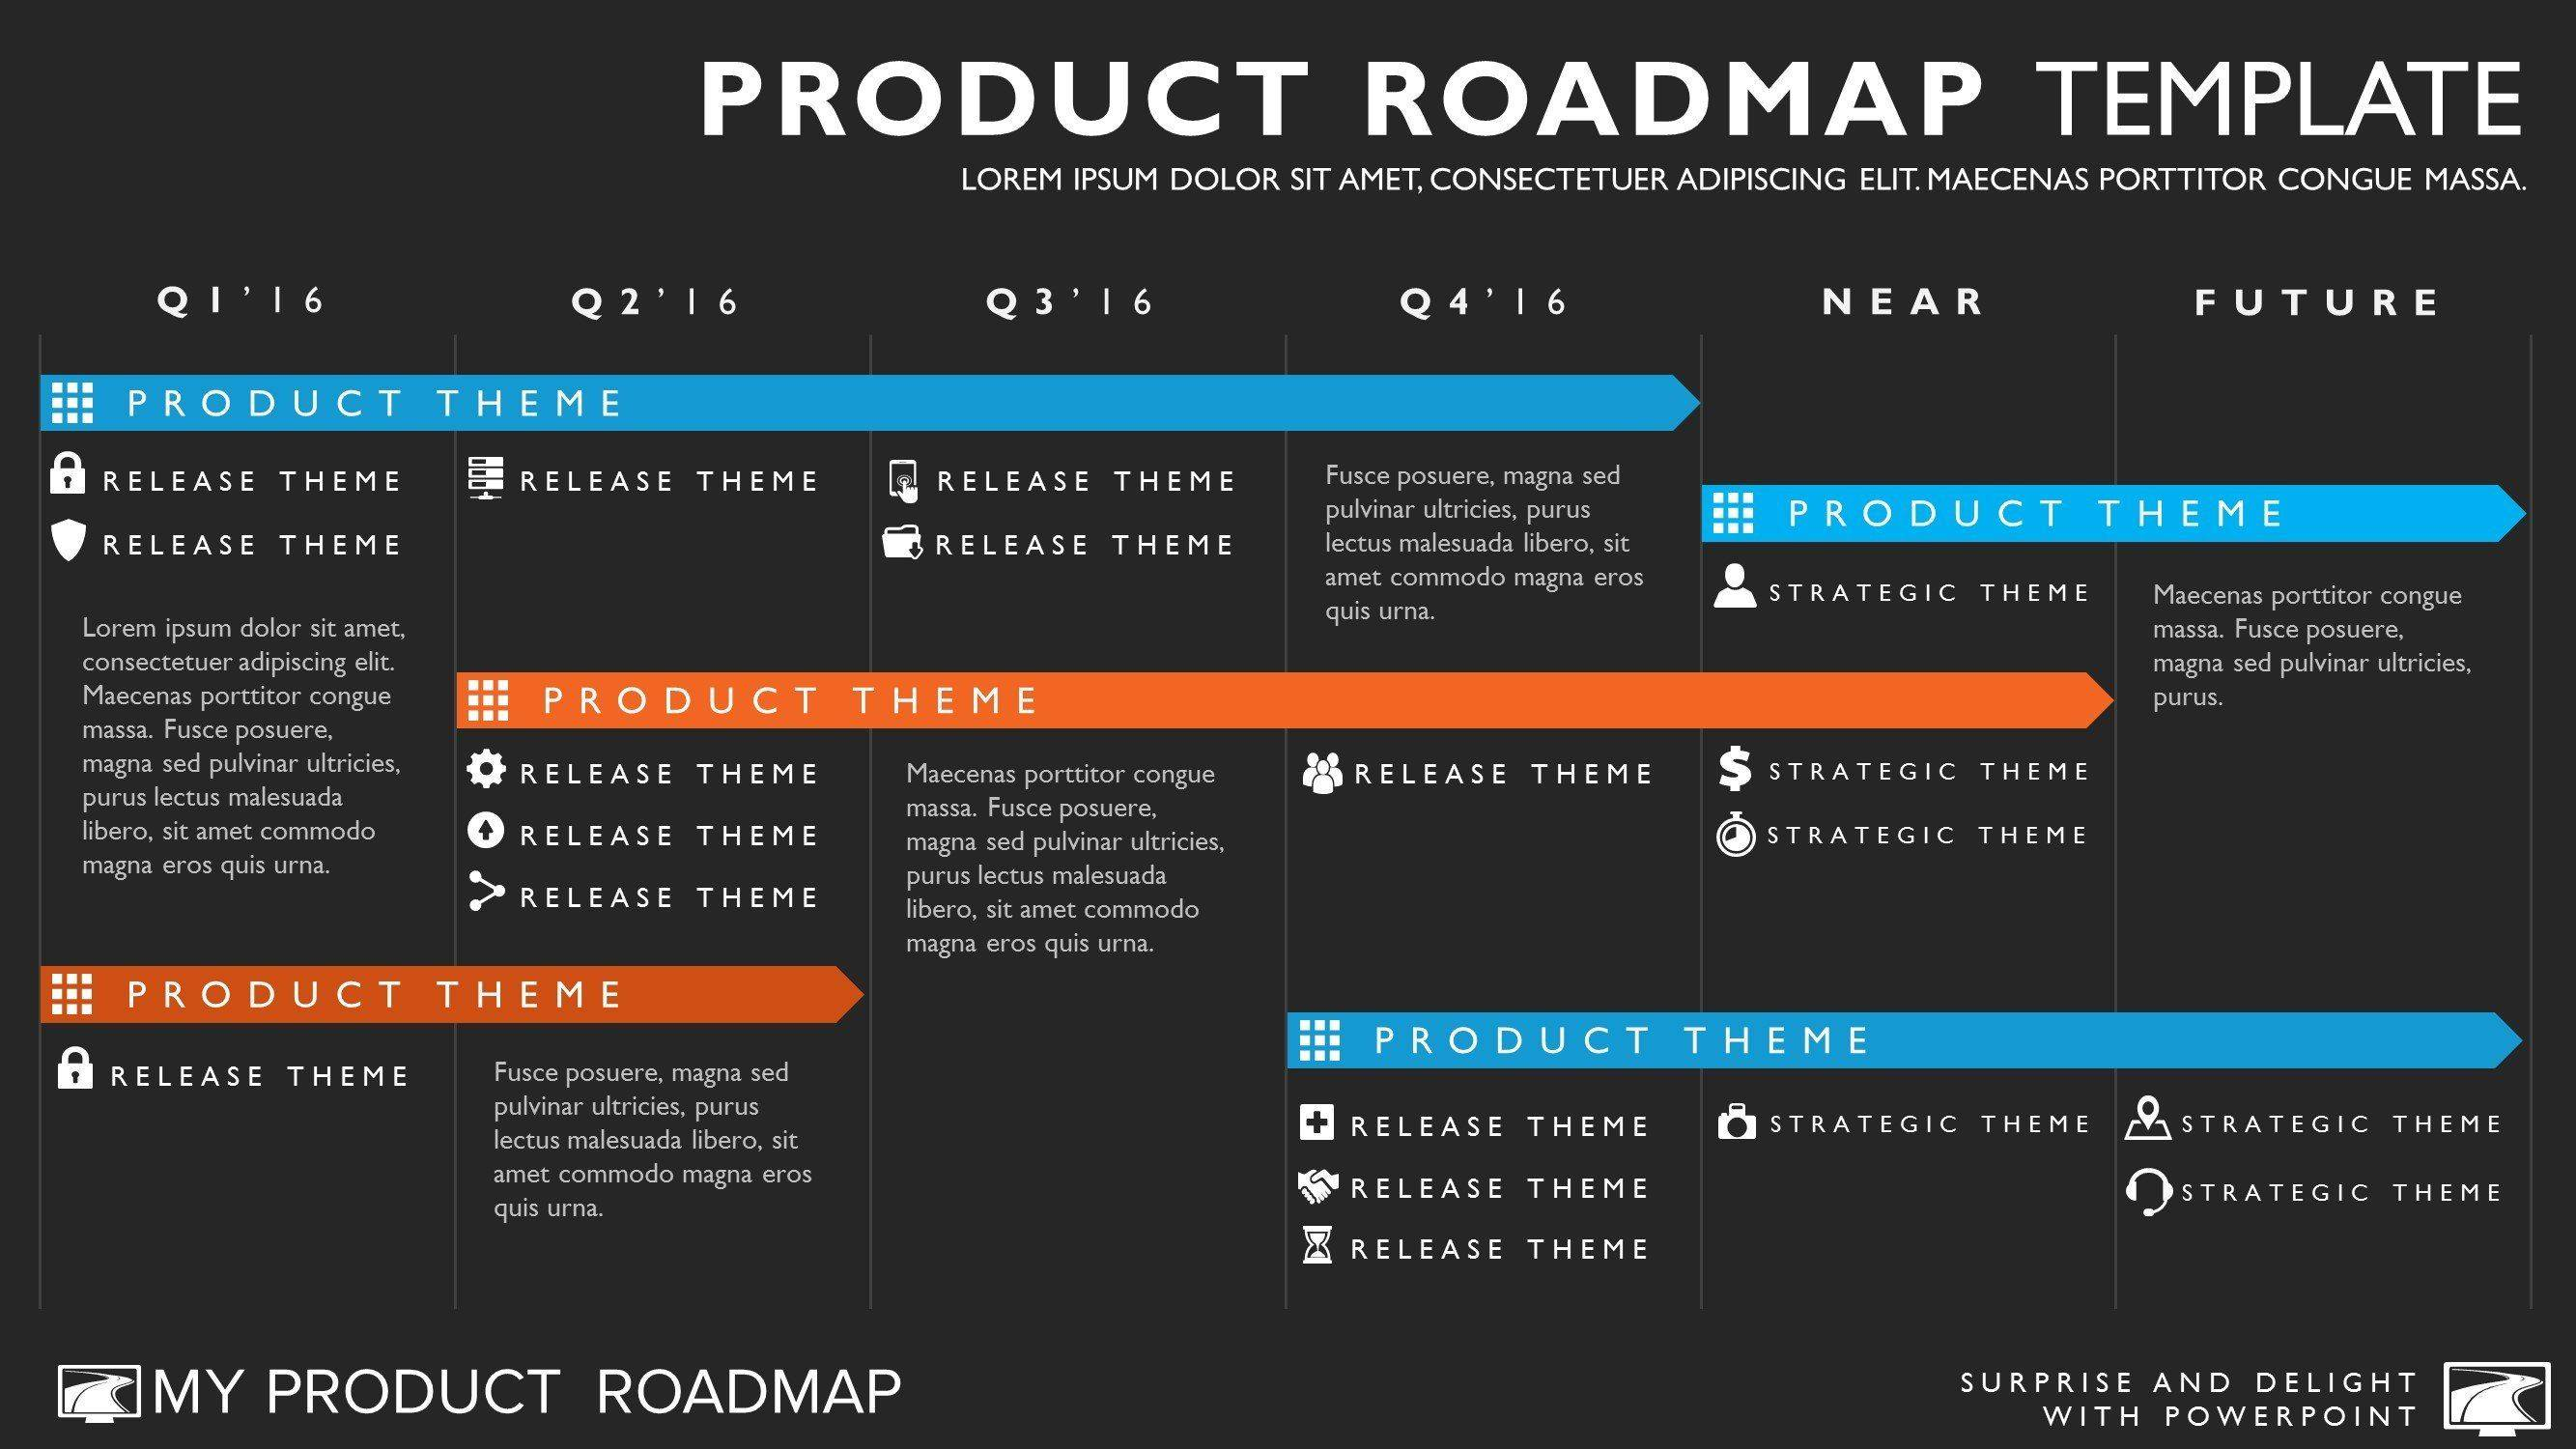 Product Roadmap Timeline Template